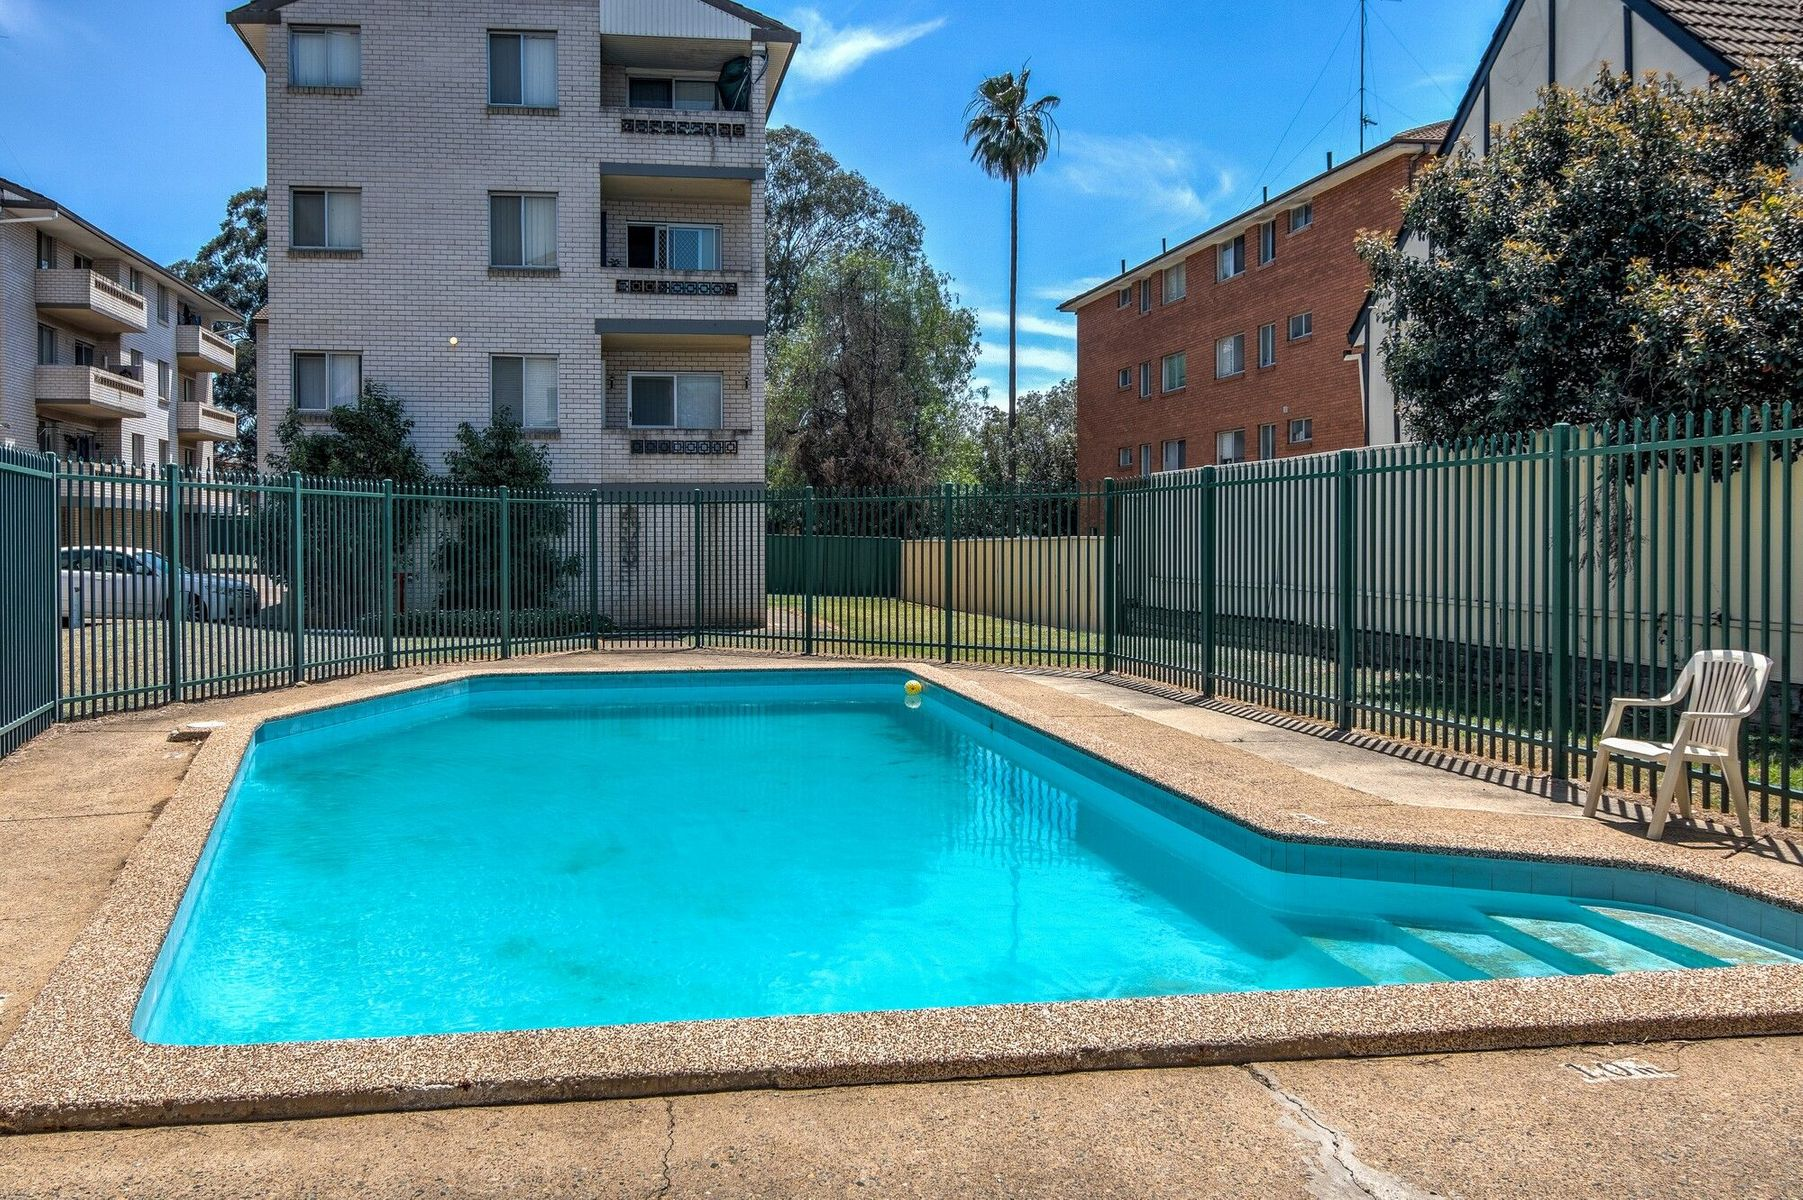 15/132 Lethbridge Street, Penrith, NSW 2750